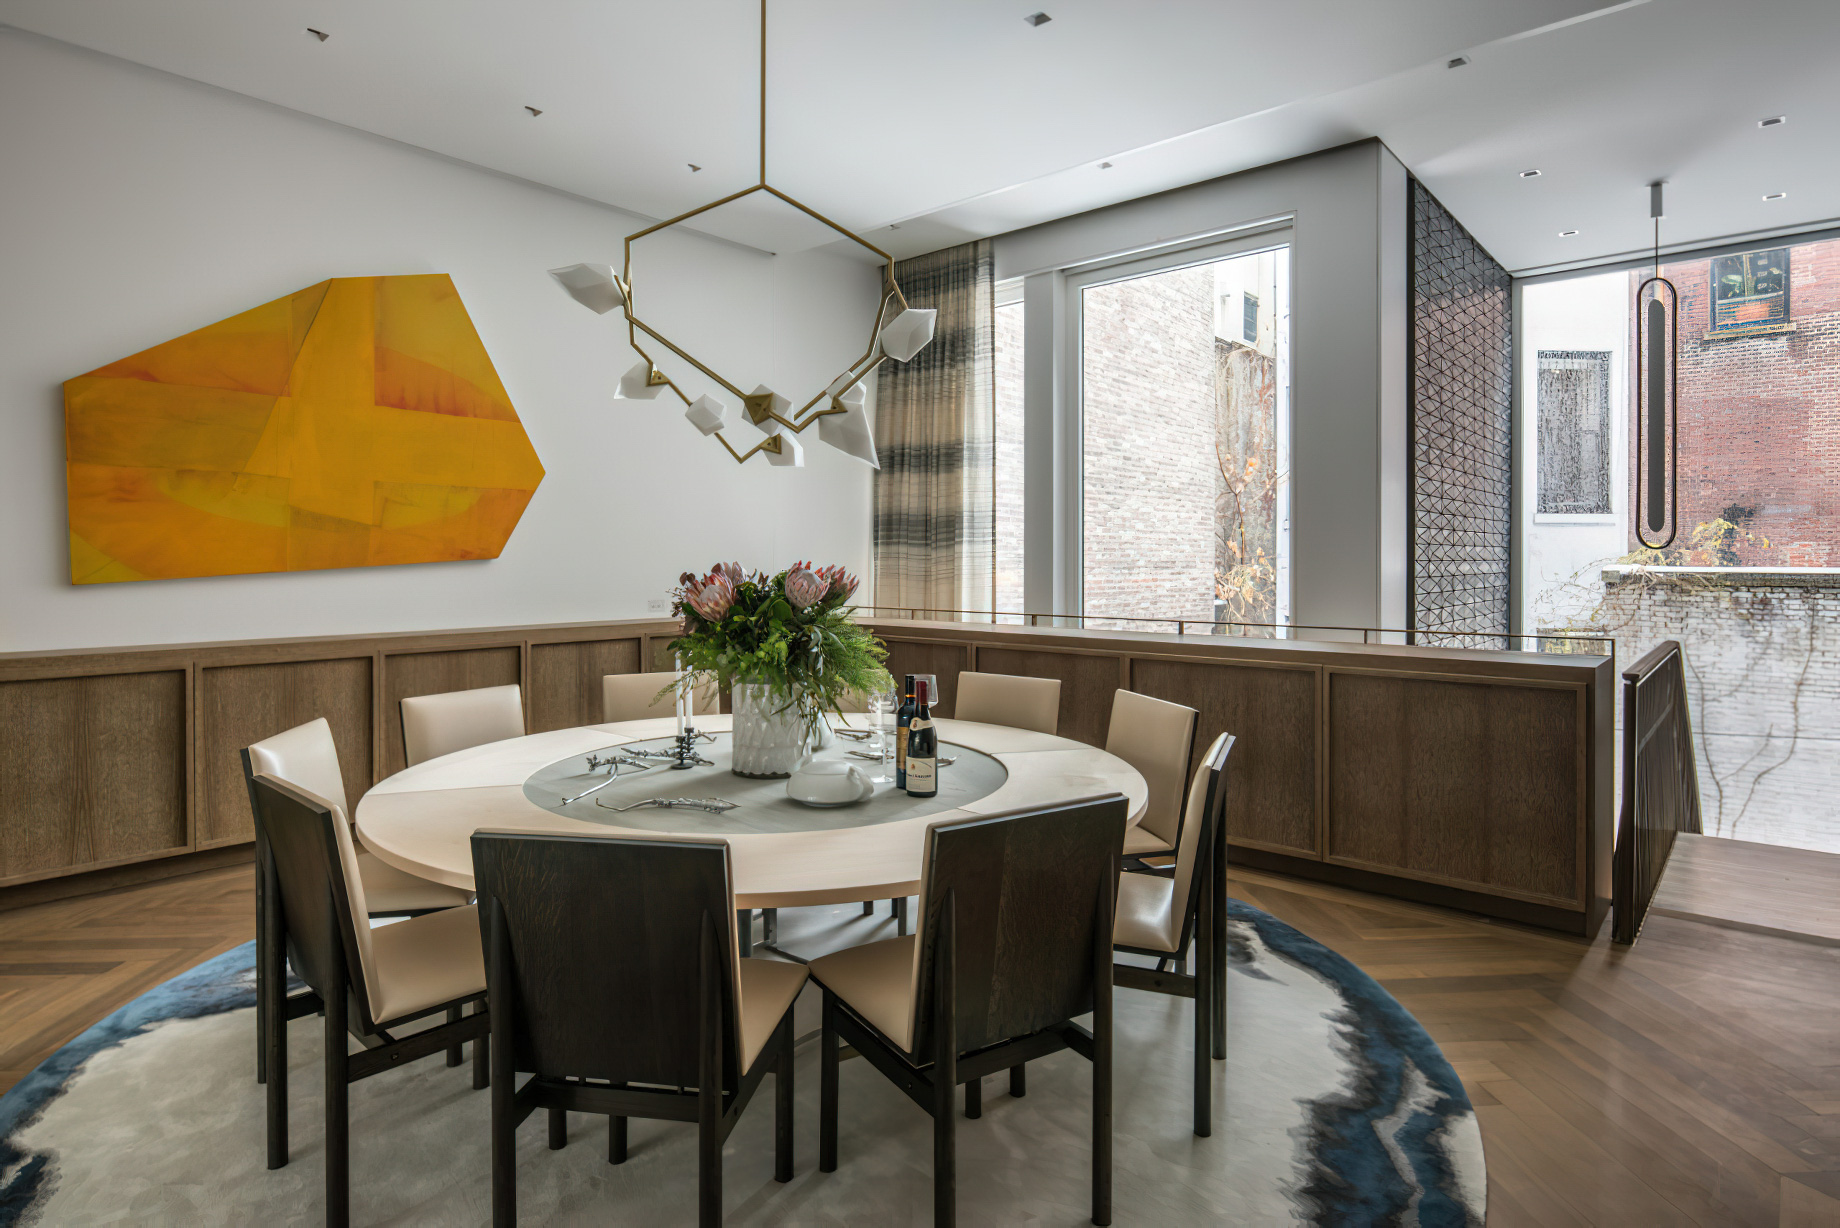 Upper East Side Townhouse Interior New York, NY, USA – Michael K Chen